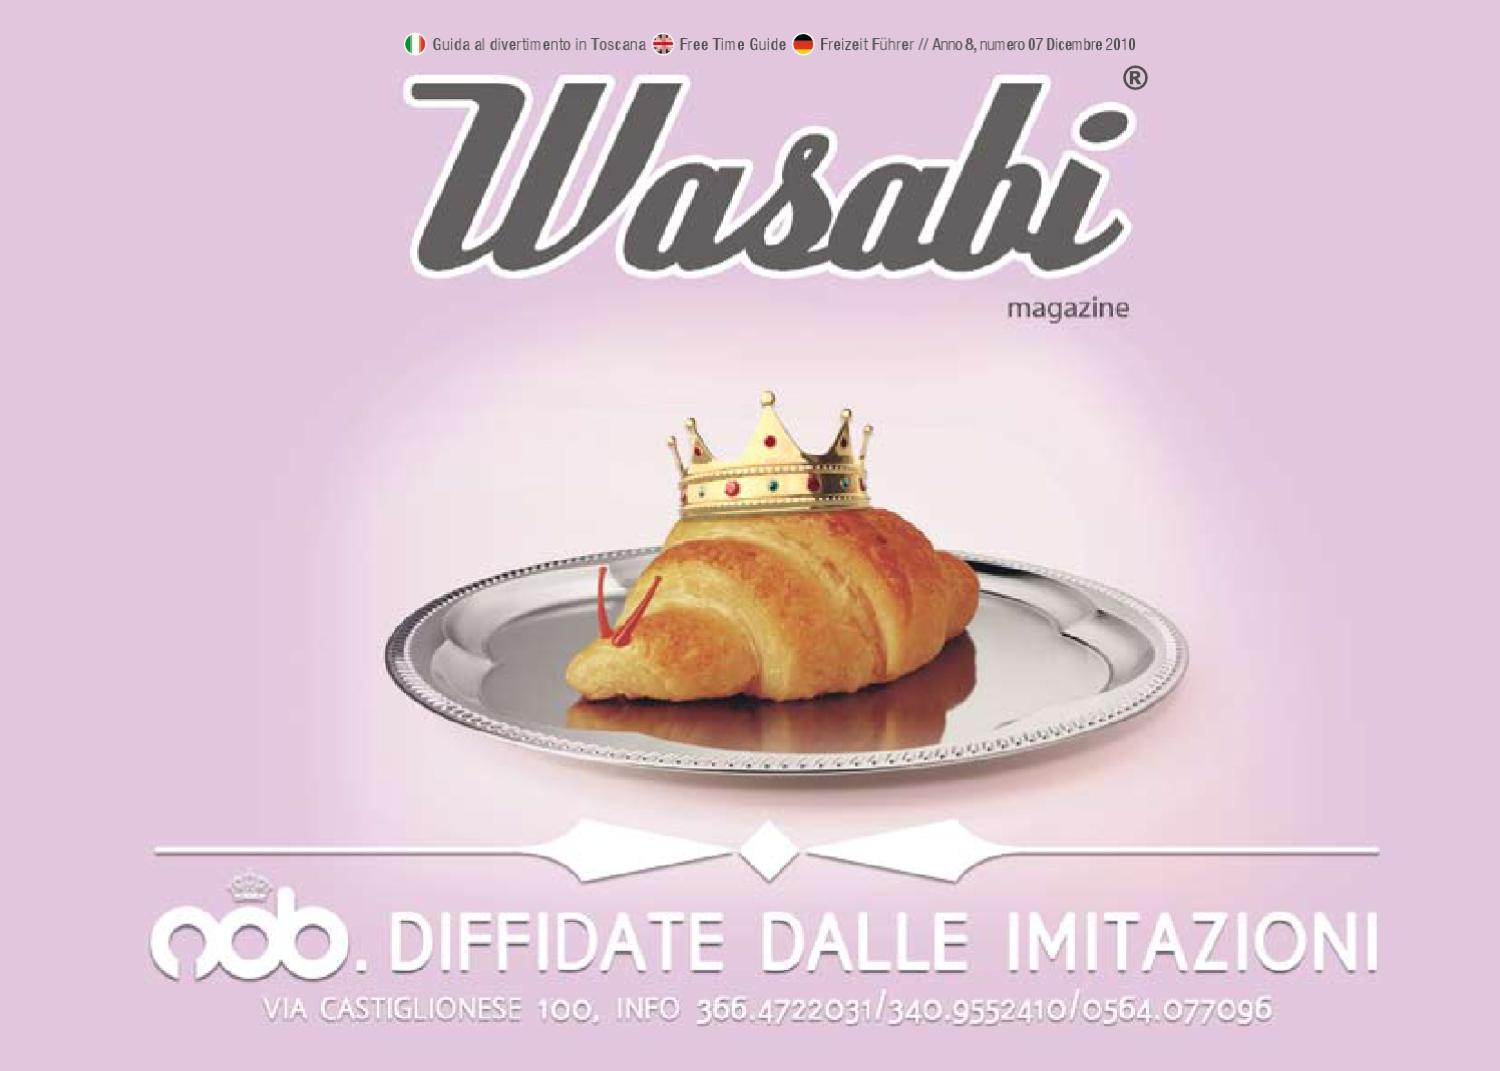 By Dicembre Mag Issuu Massimiliano Rossi 2010 Wasabi qRt5dwR